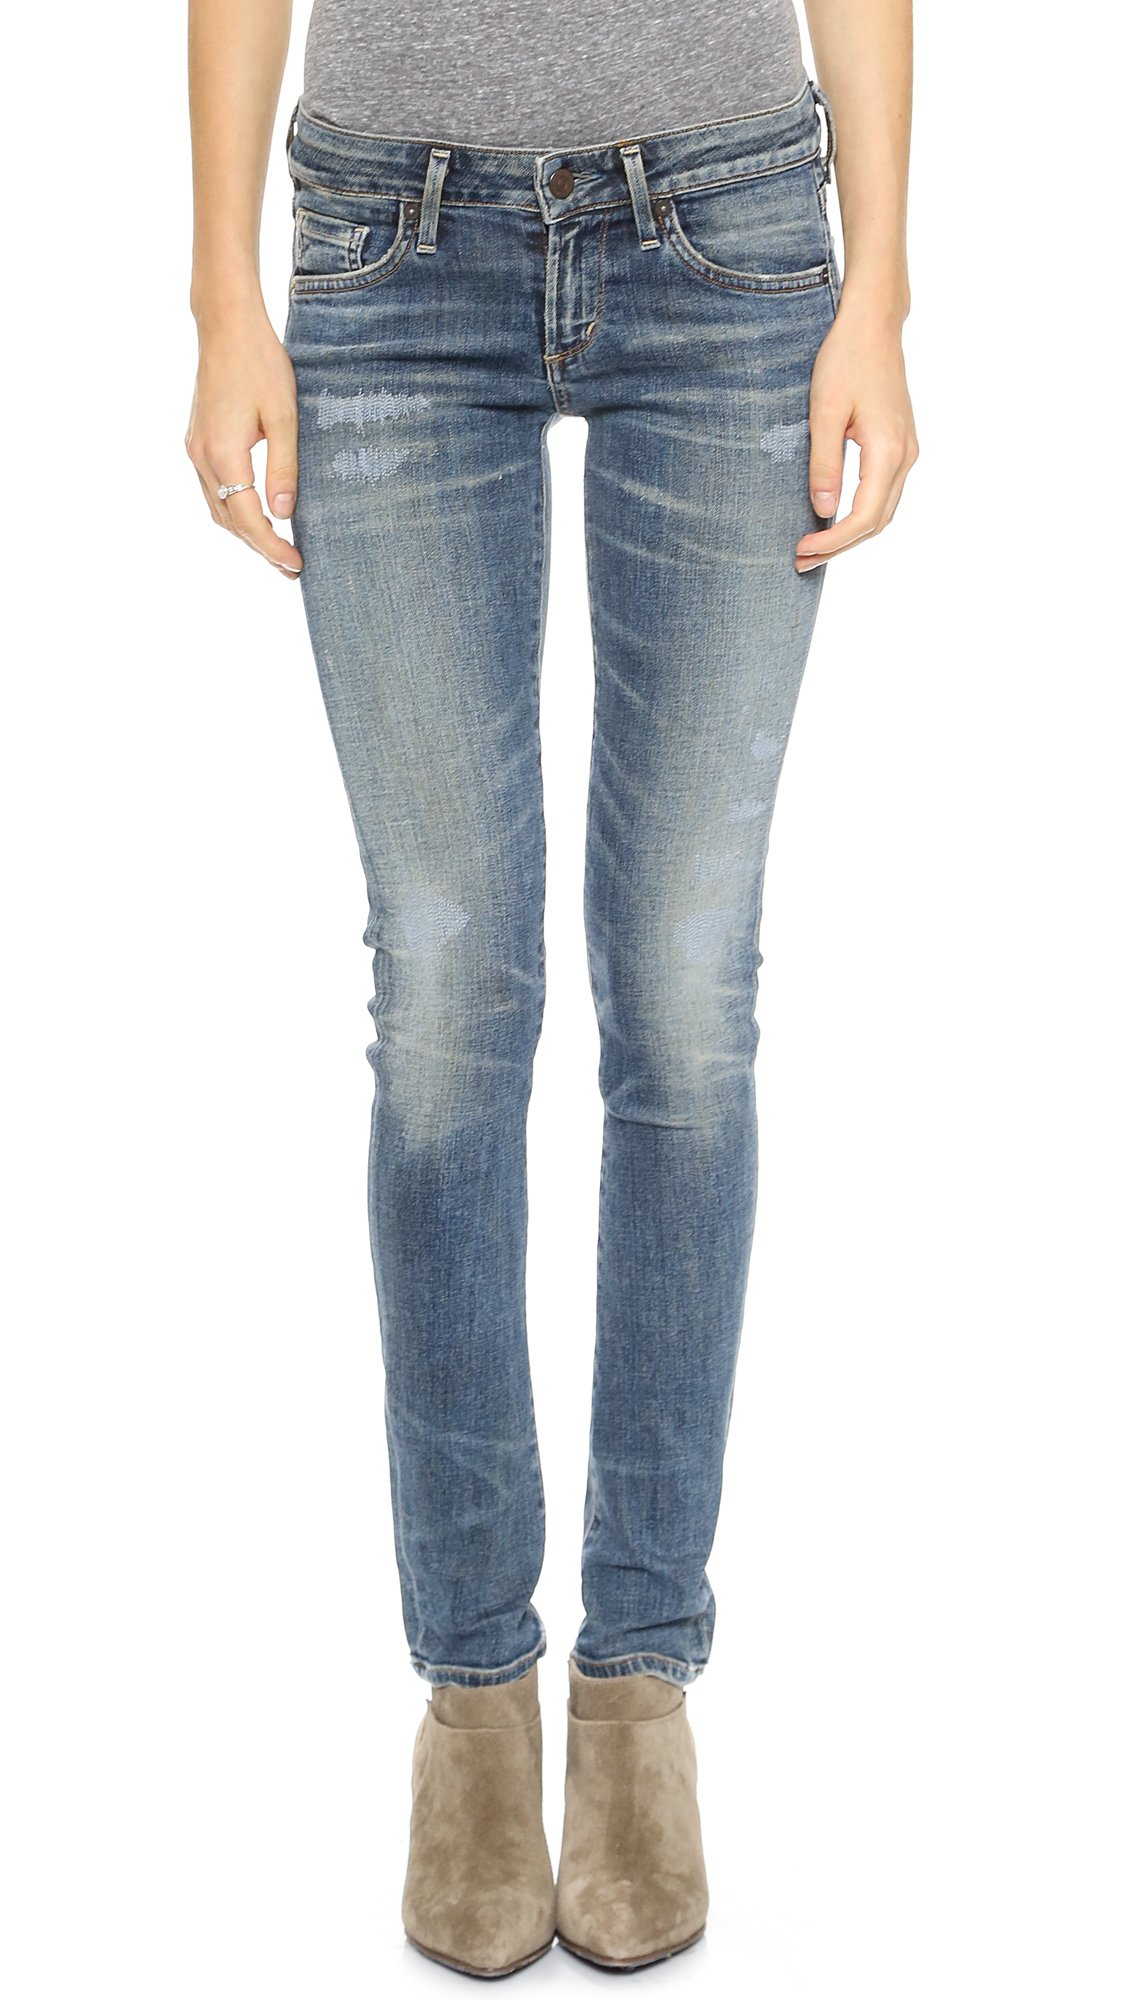 6c0c5f6be957 Citizens of Humanity Racer Skinny Jeans